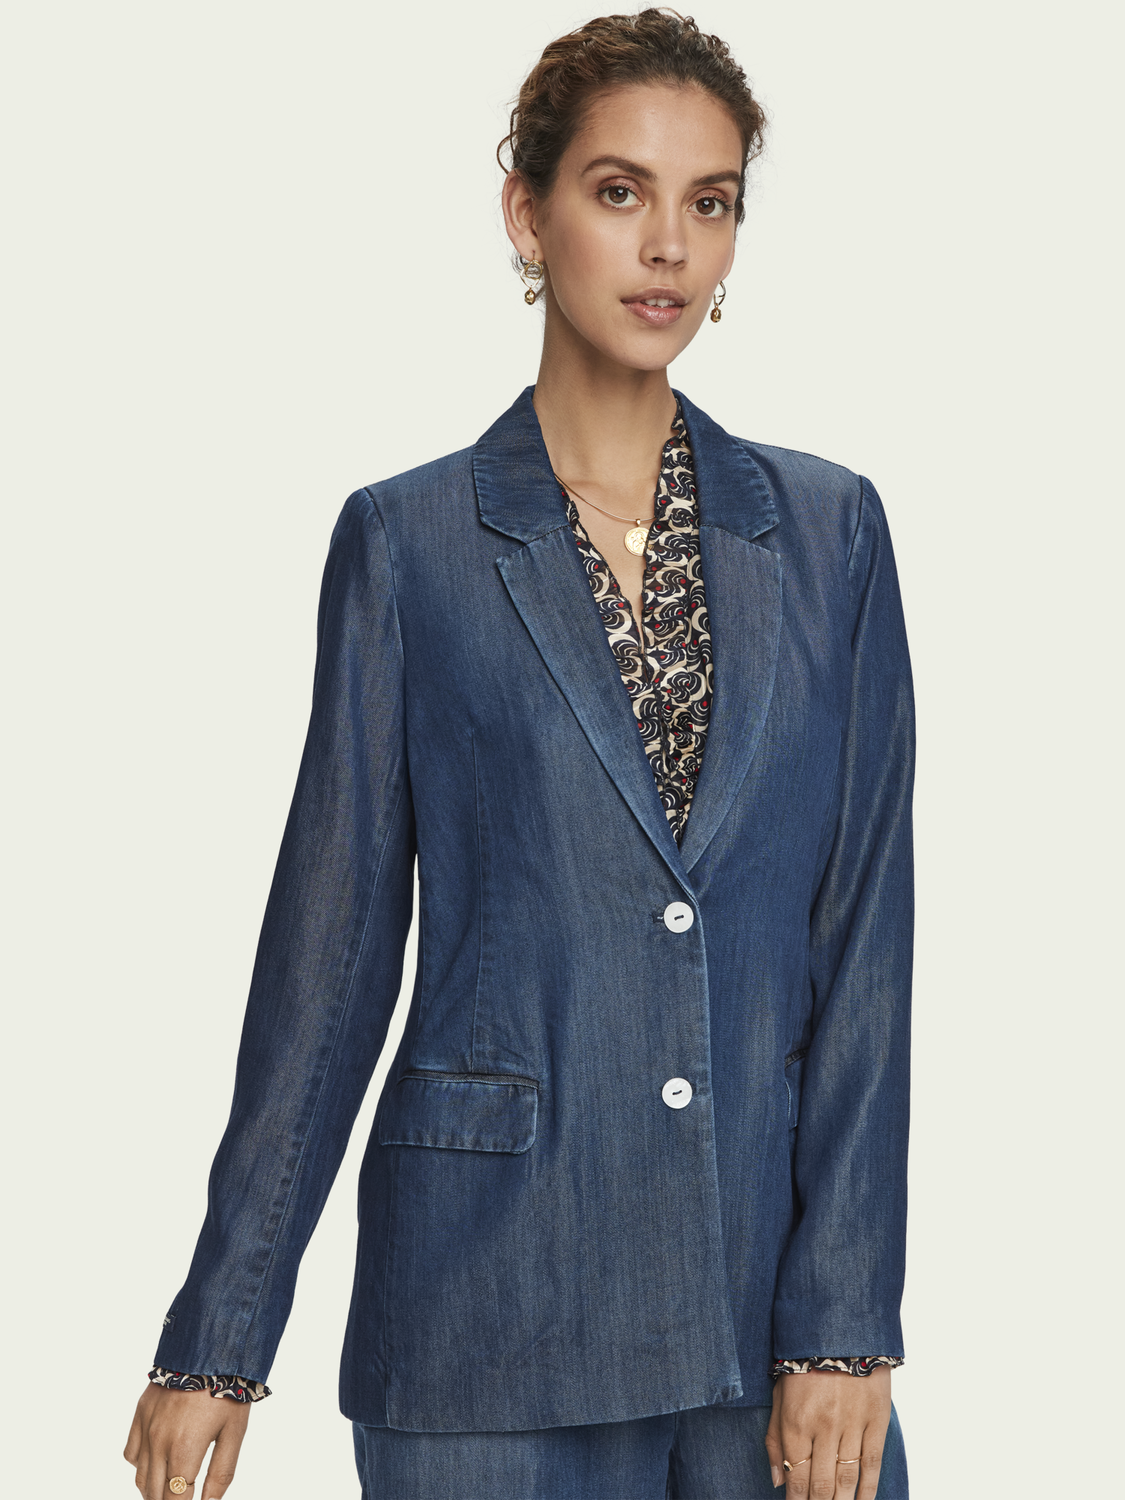 Women TENCEL™ denim blazer